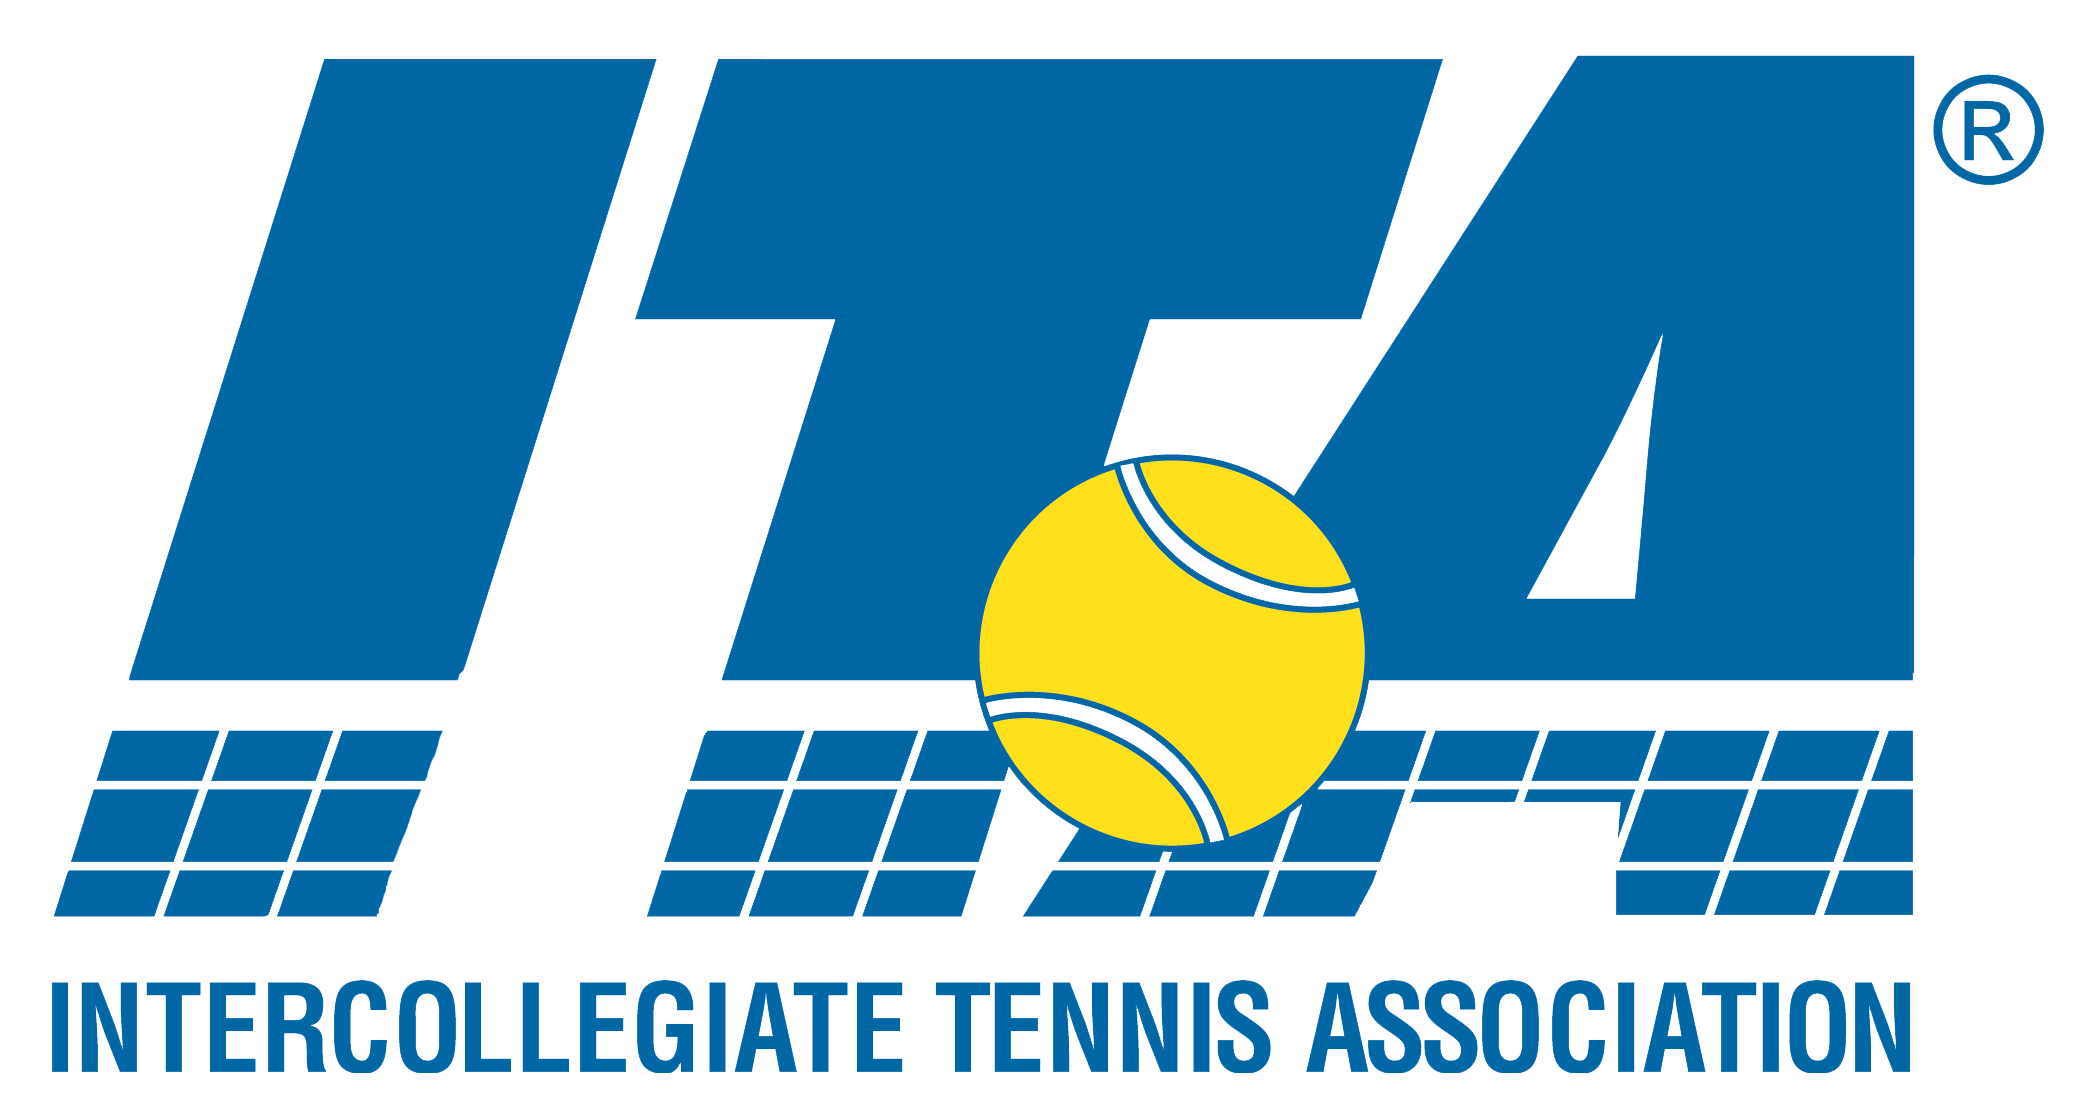 Intercollegiate tennis association logo copy